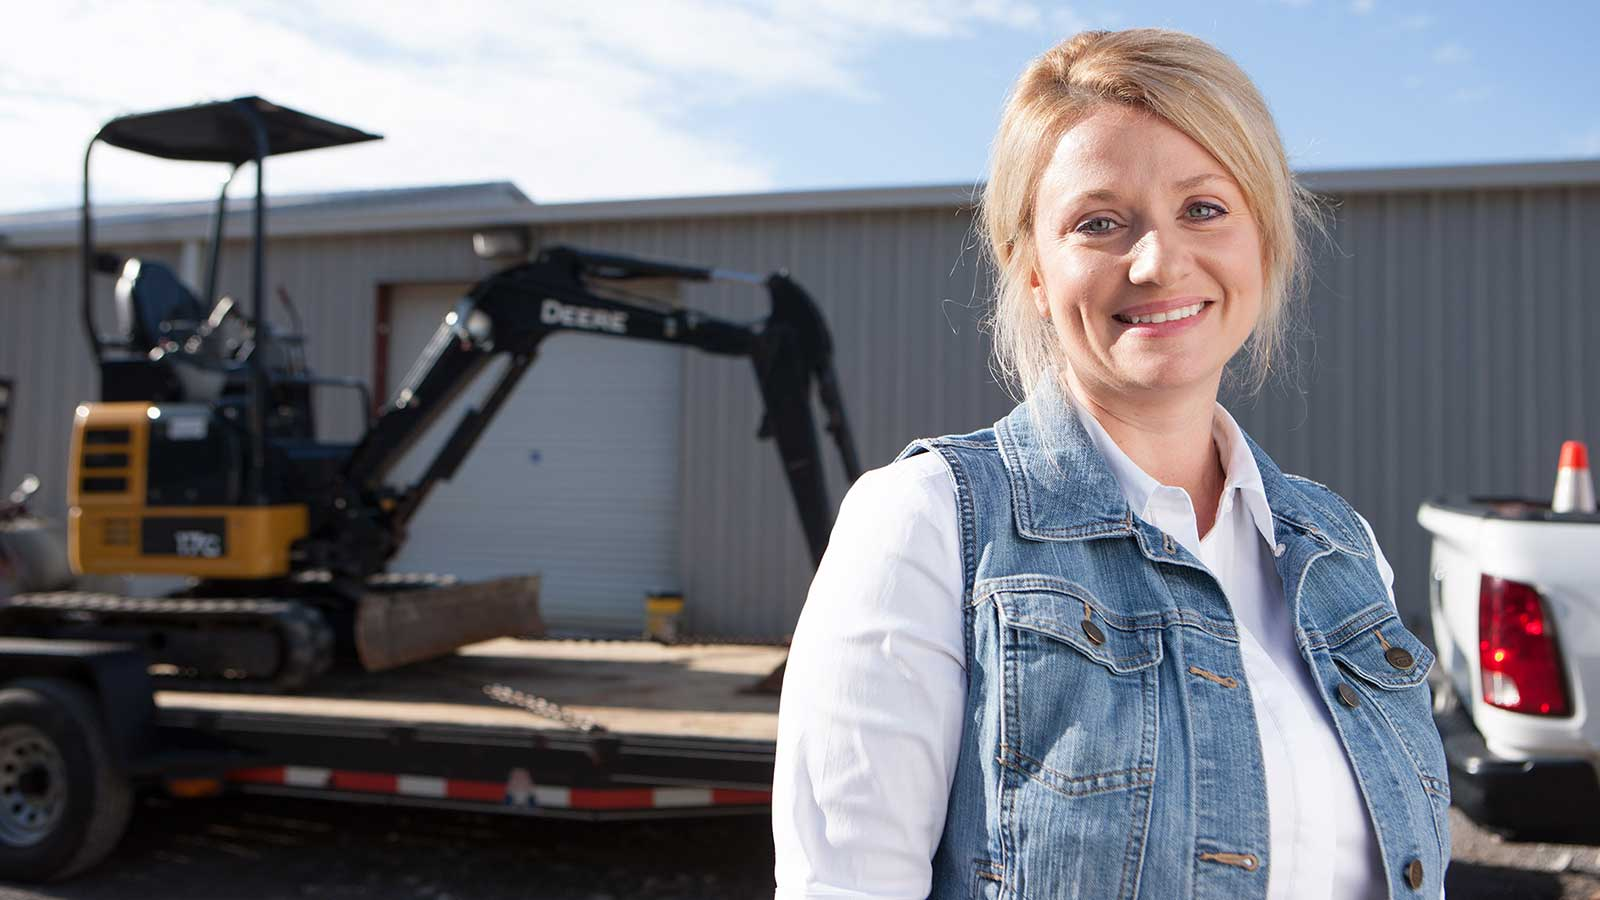 Chasity Crowe-Moore stands in front of a 17G mini excavator on a trailer.